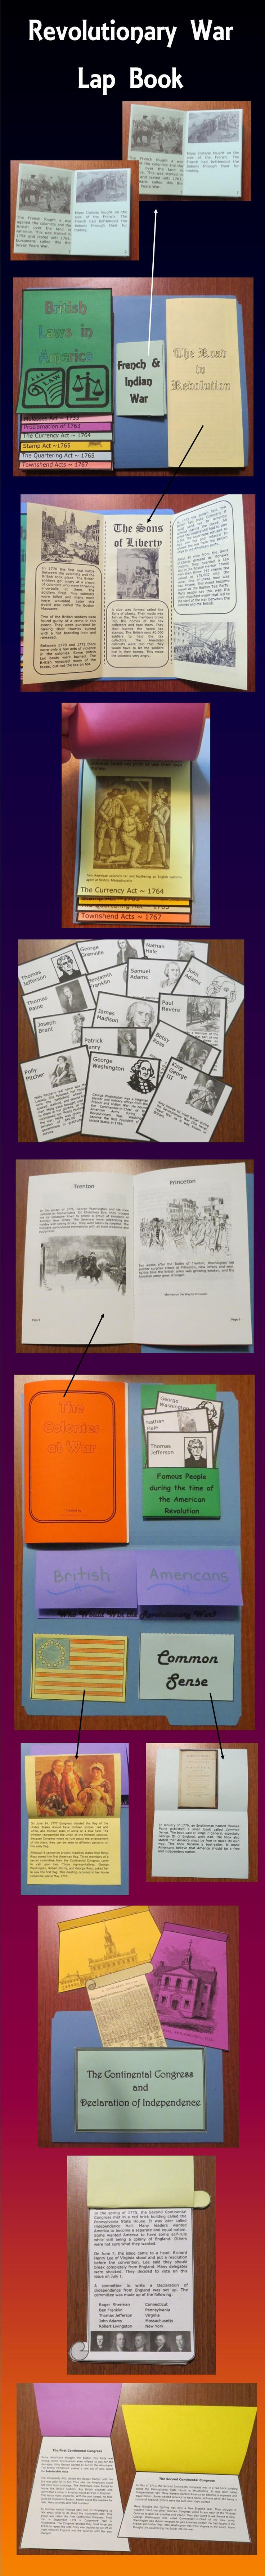 This Revolutionary War Lap Book contains interactive organizers which may be glued onto a file folder to form a lap book, added to interactive notebooks, or used individually. $